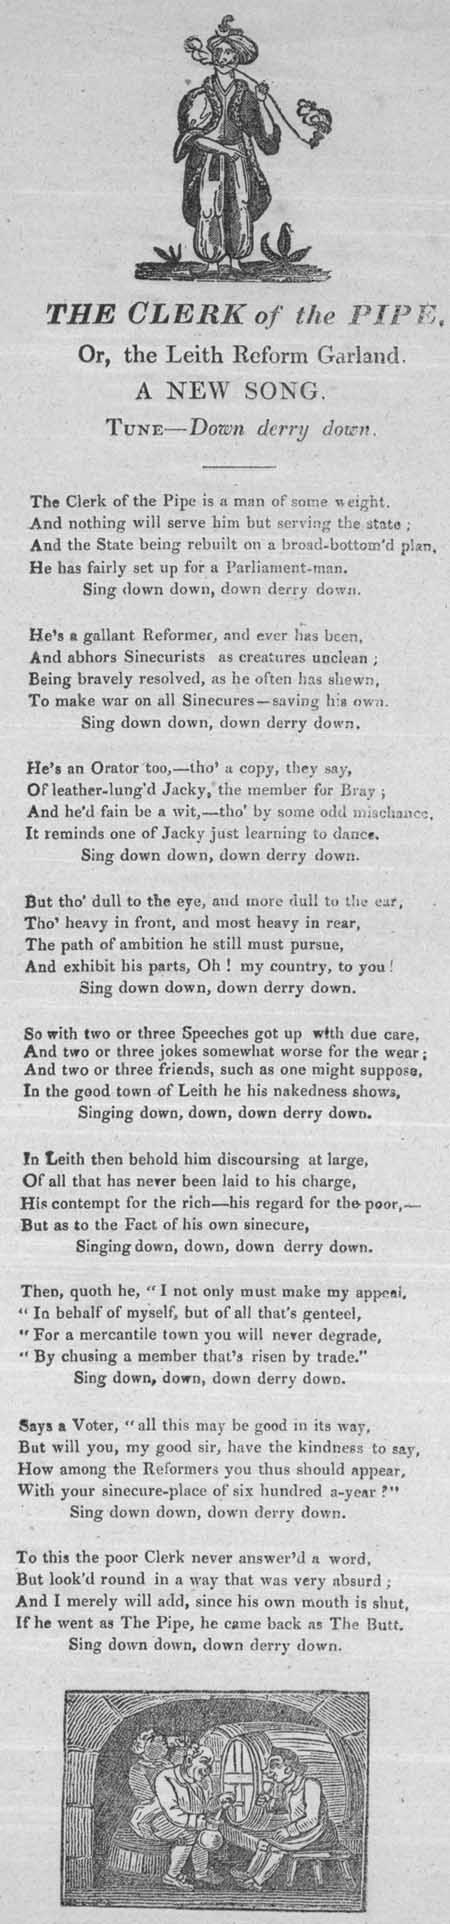 Broadside ballad entitled 'The Clerk of the Pipe, Or, The Leith Reform Garland'